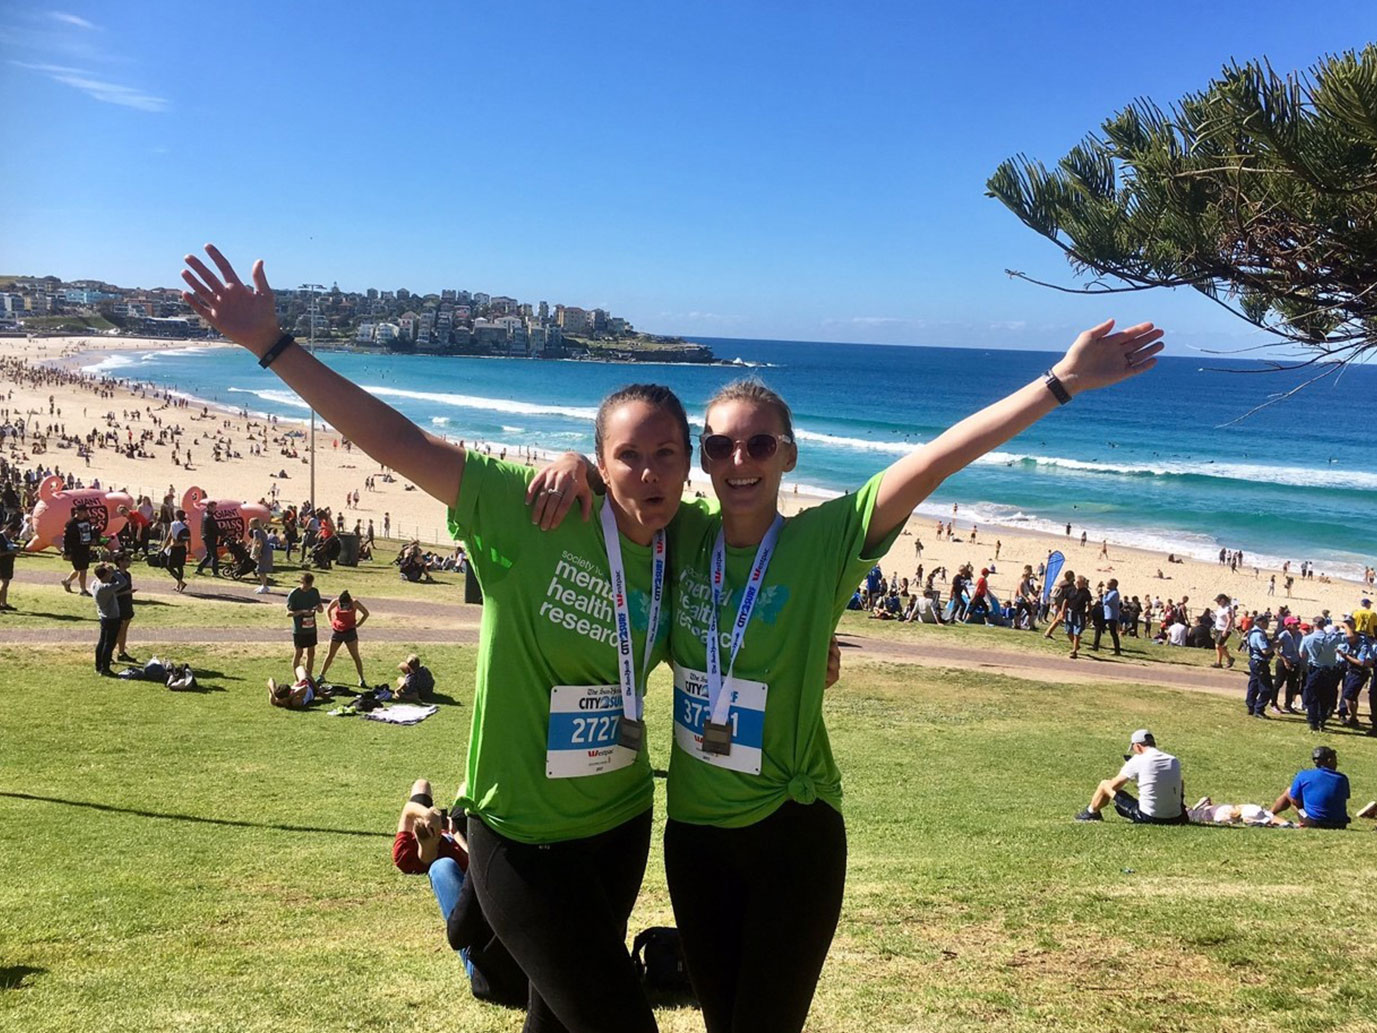 City2Surf – 2017 & 2018 - In 2017 and 2018 SMHR partnered with Medacs Global Group Australia to raise funds for mental health research.